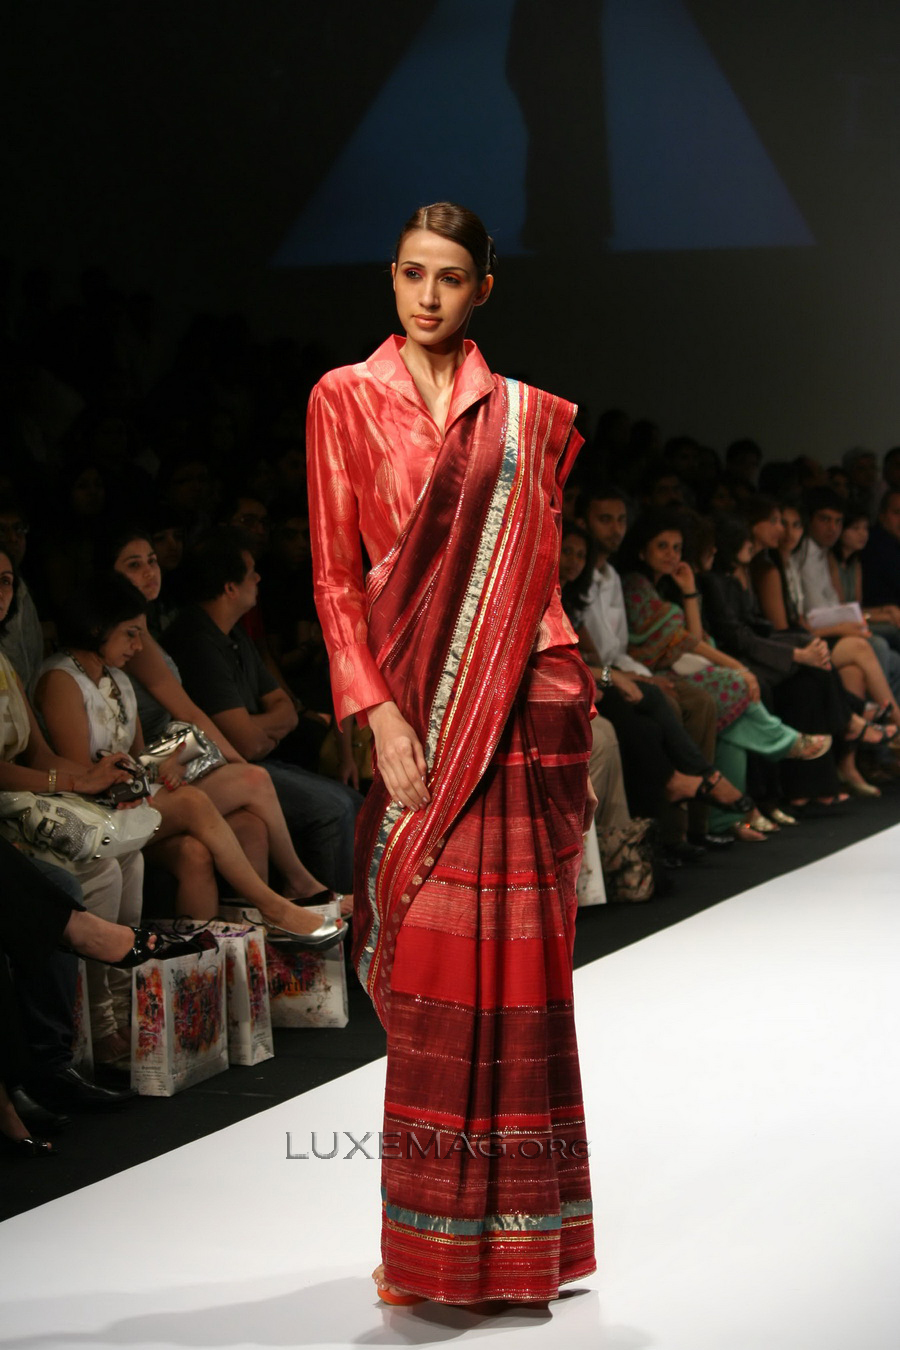 You are browsing images from the article: Indian Clothing